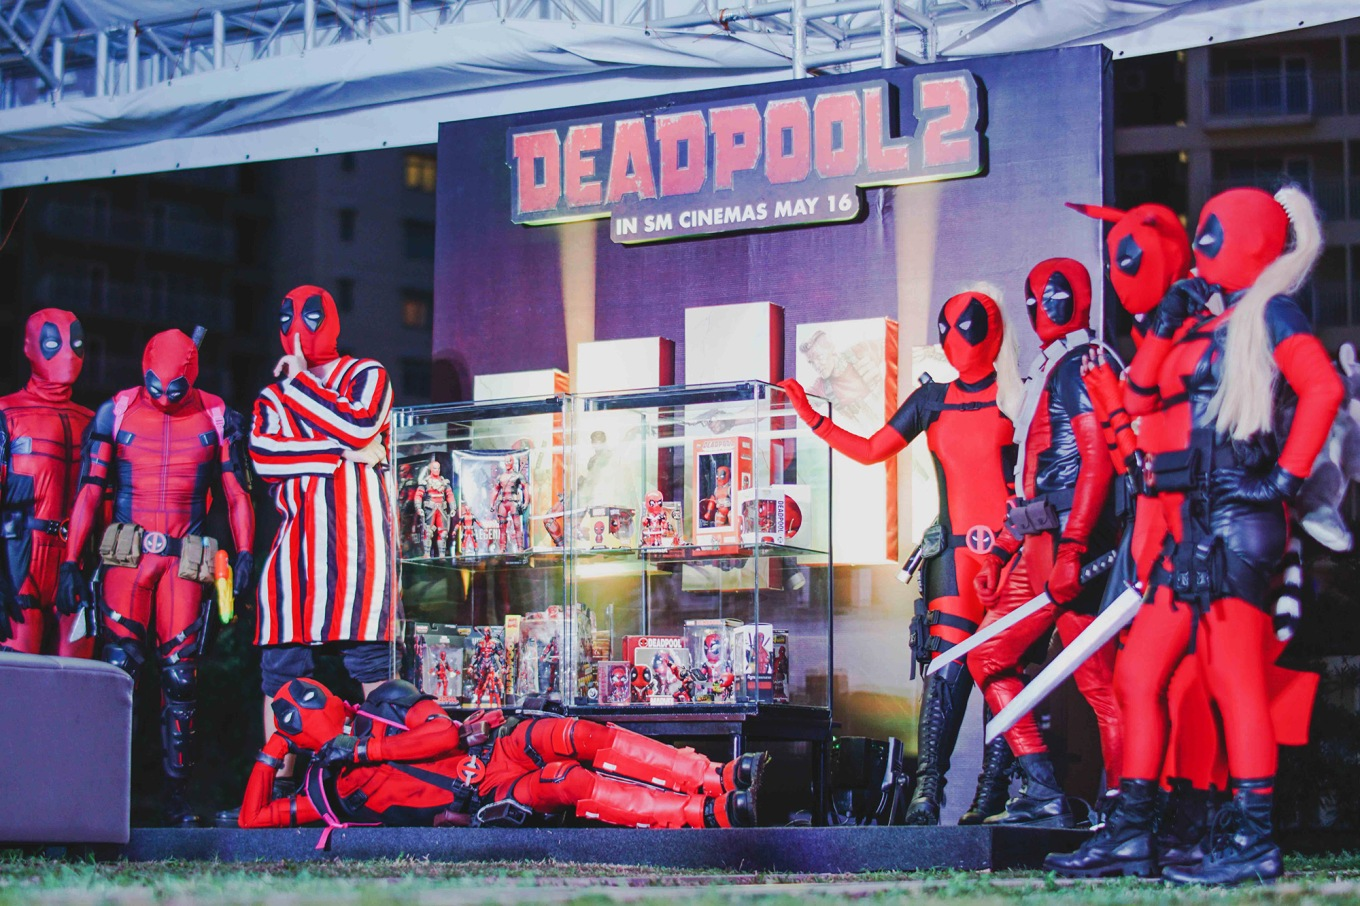 Cosplayers pose with the Deadpool character action figures